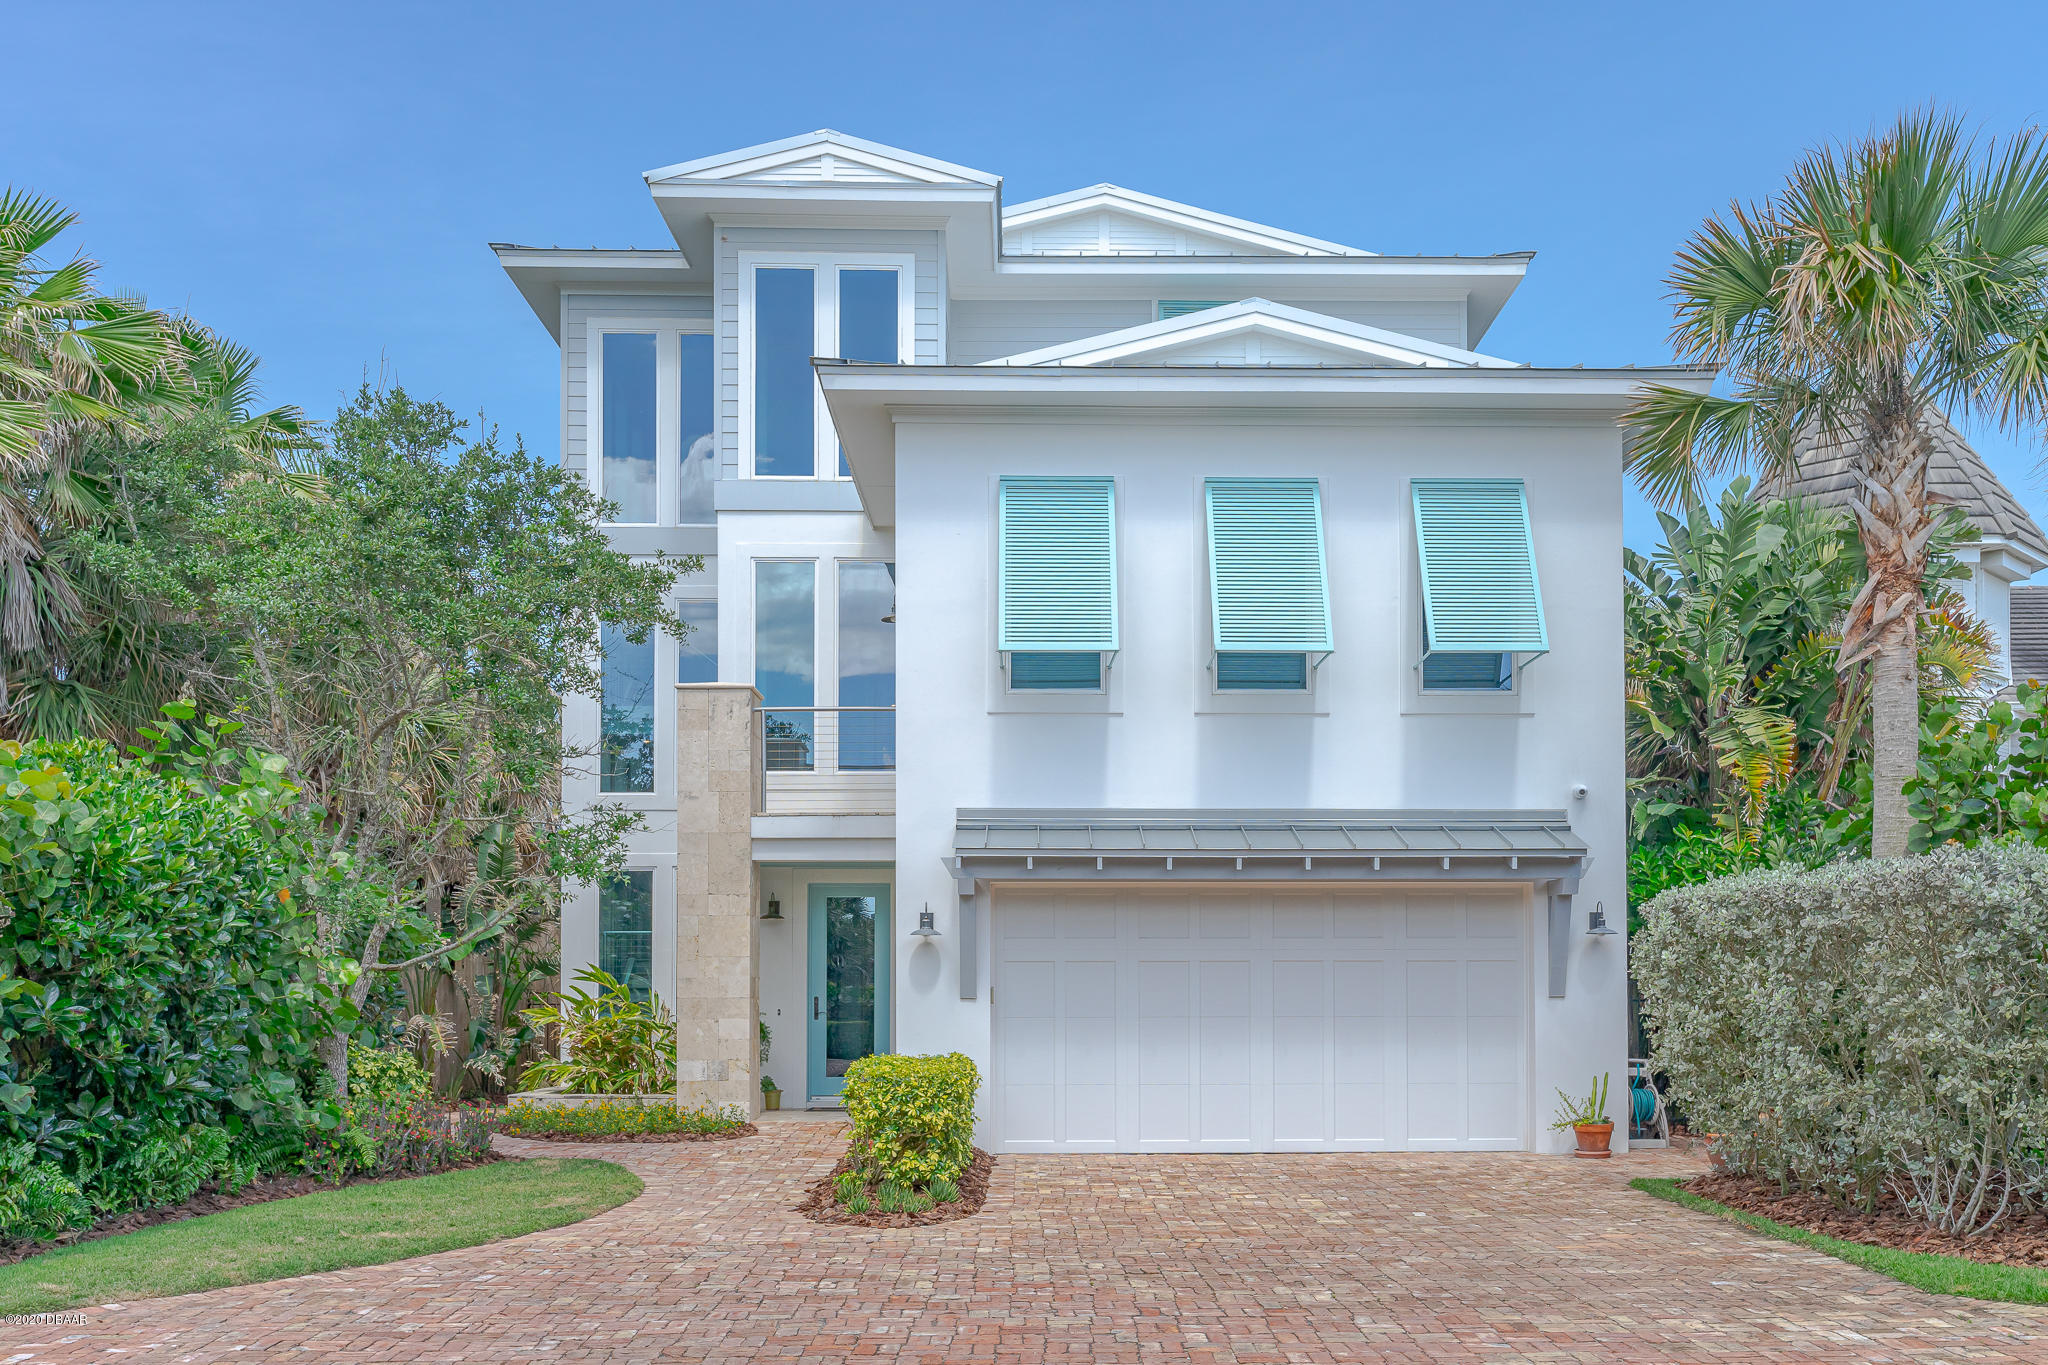 2745 S Atlantic Avenue, one of homes for sale in Daytona Beach Shores